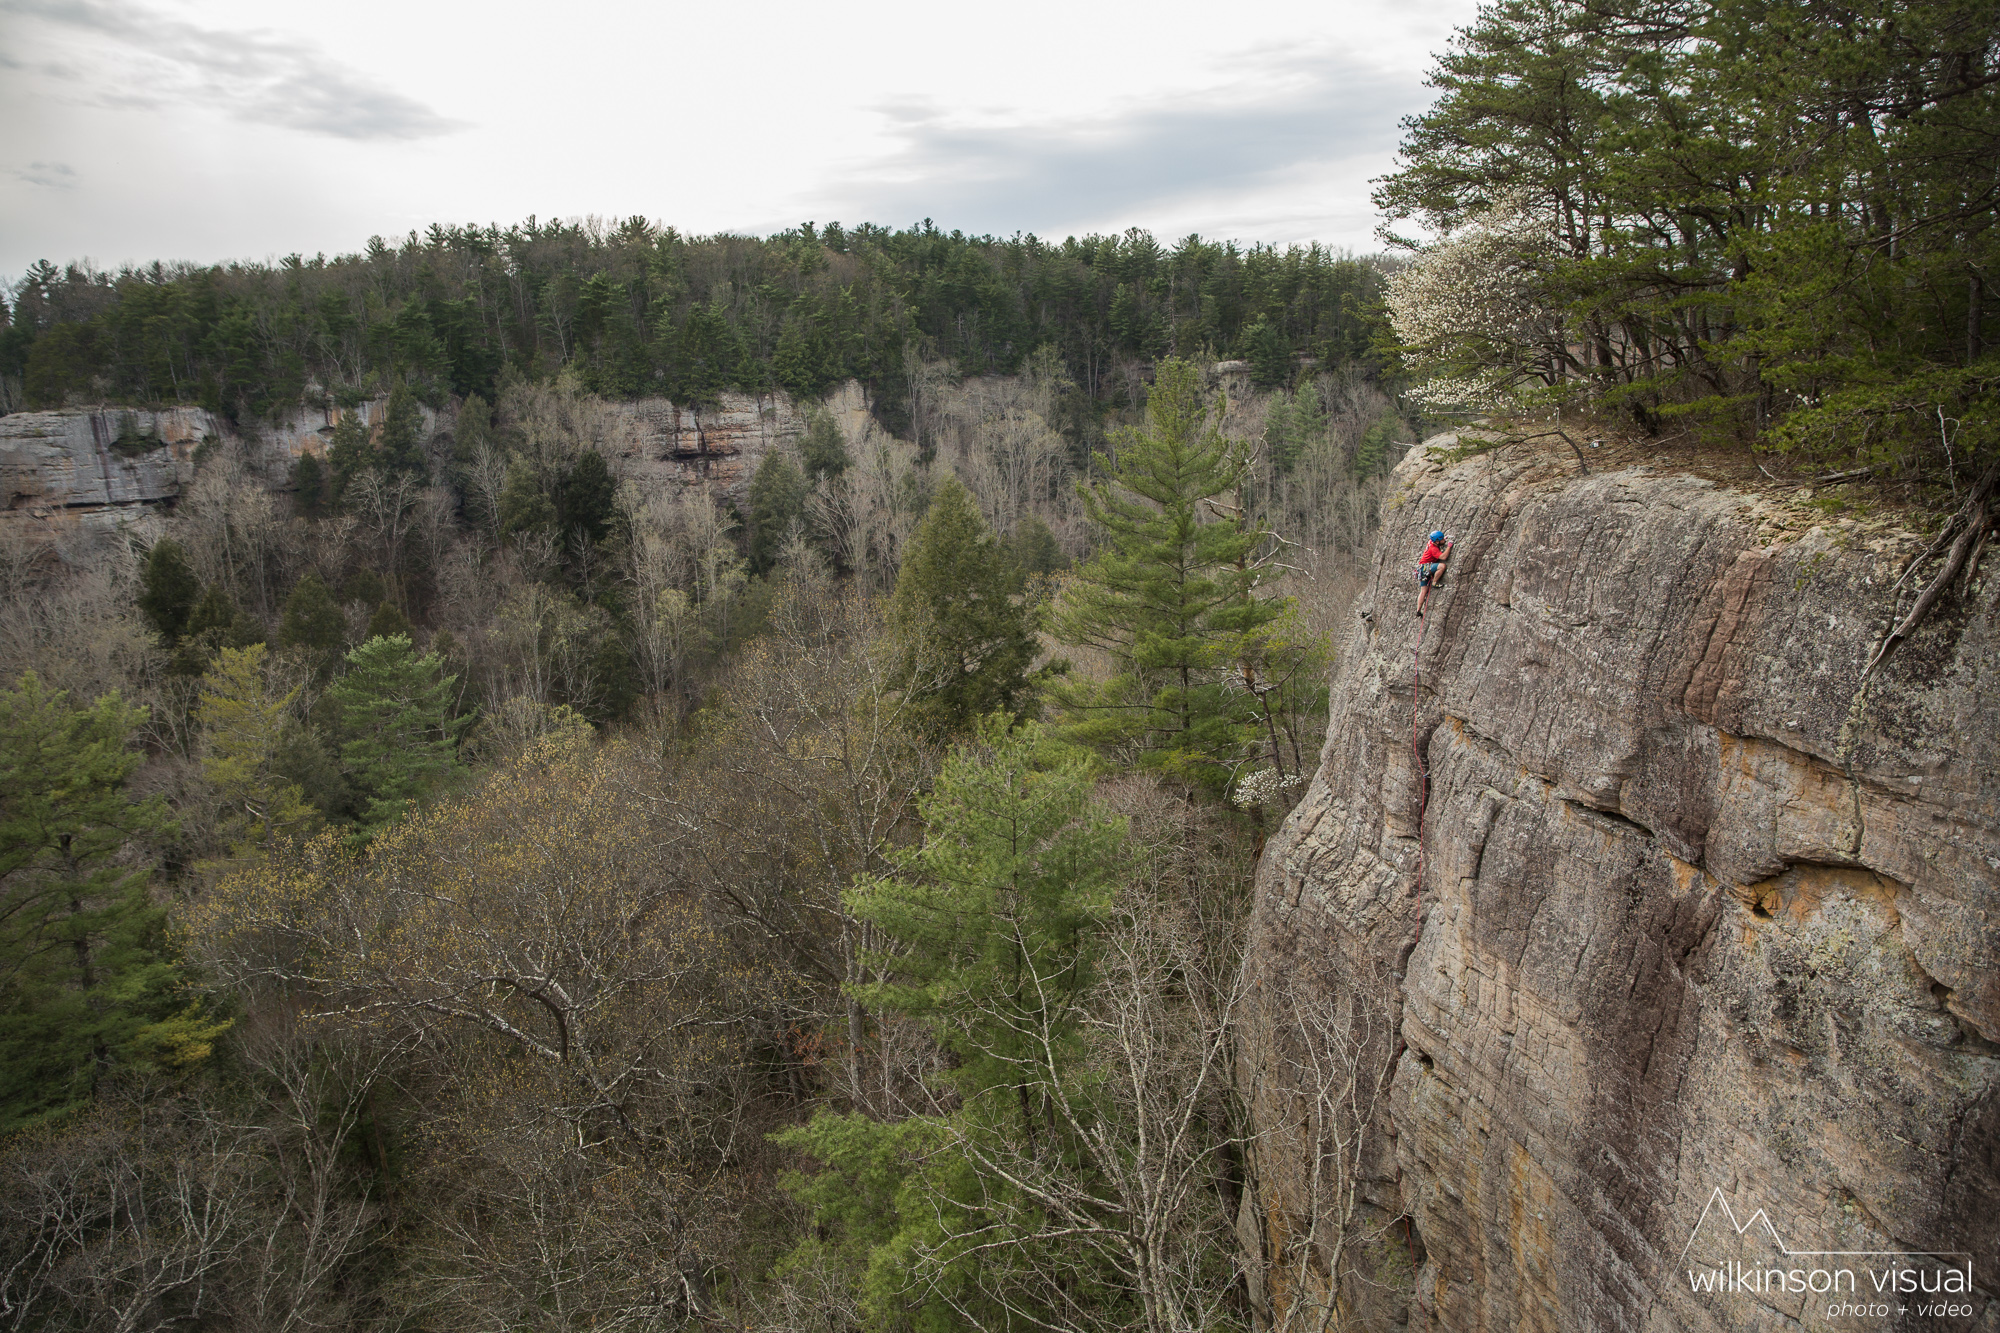 Geoff Ris climbs a backcountry trad route deep in the Daniel Boone National Forest of Kentucky. Rope shown is Beal.